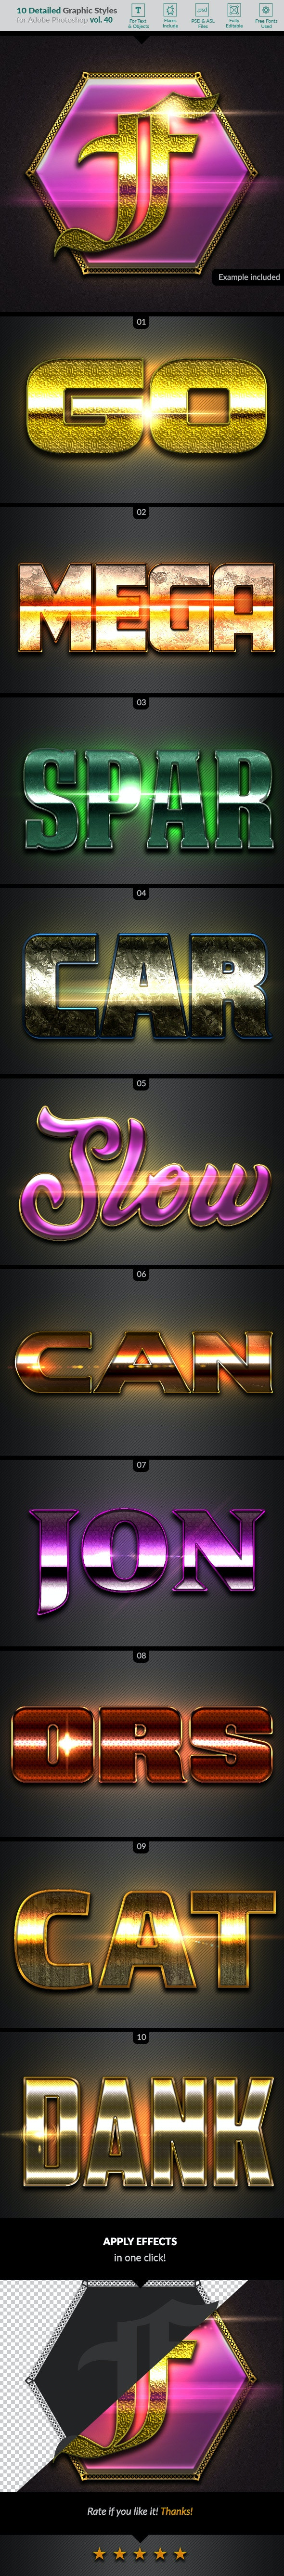 10 Text Effects Vol. 40 - Text Effects Styles